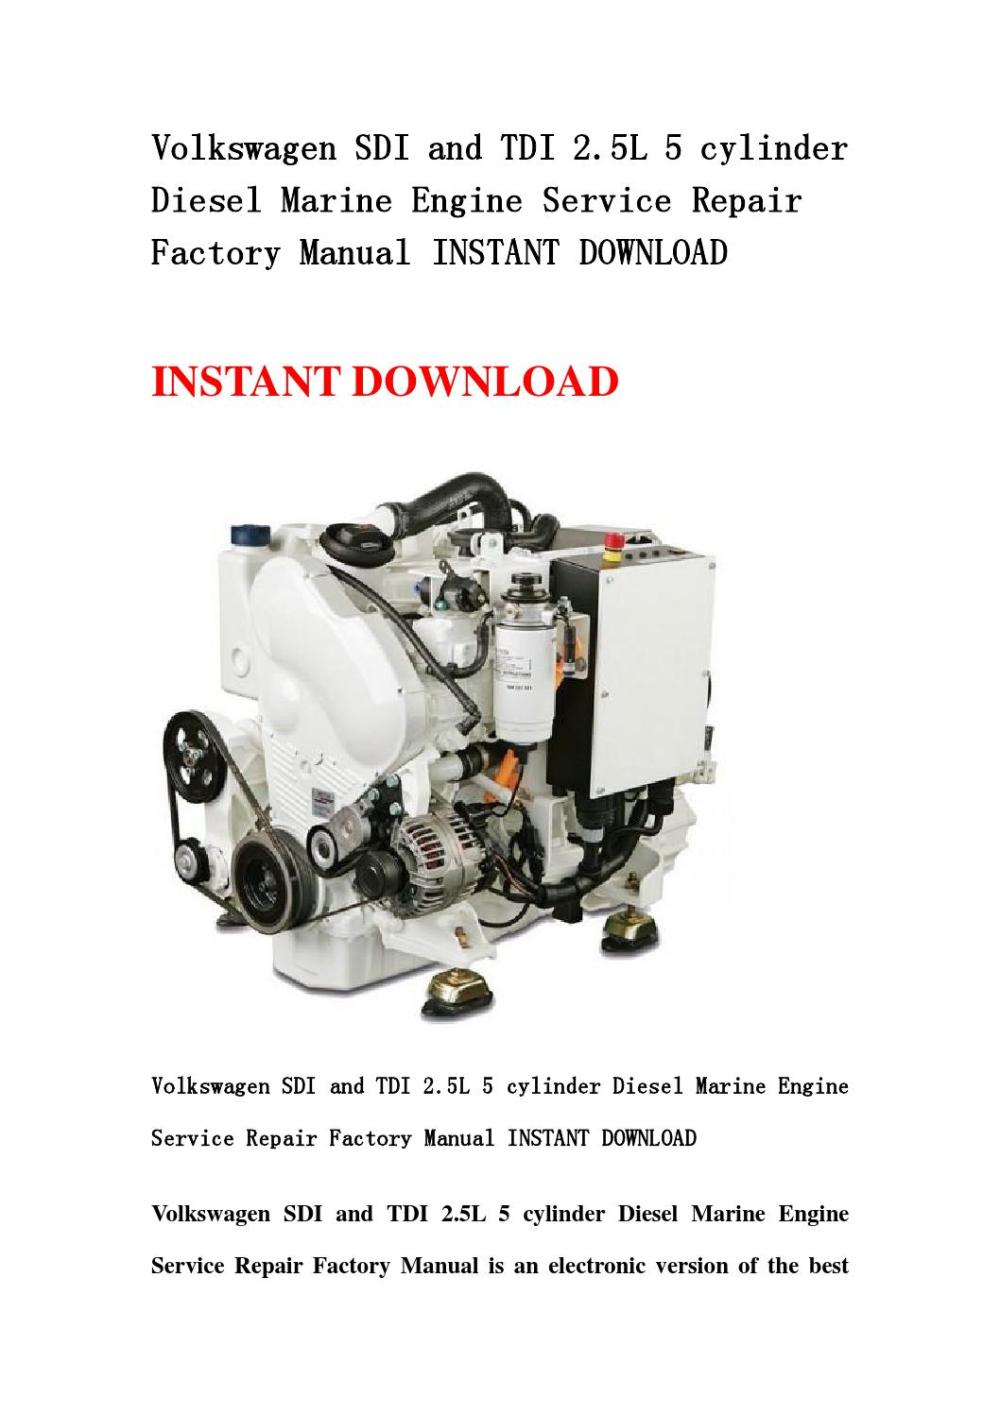 medium resolution of volkswagen sdi and tdi 2 5l 5 cylinder diesel marine engine service repair factory manual instant do by kmjnshenfn issuu